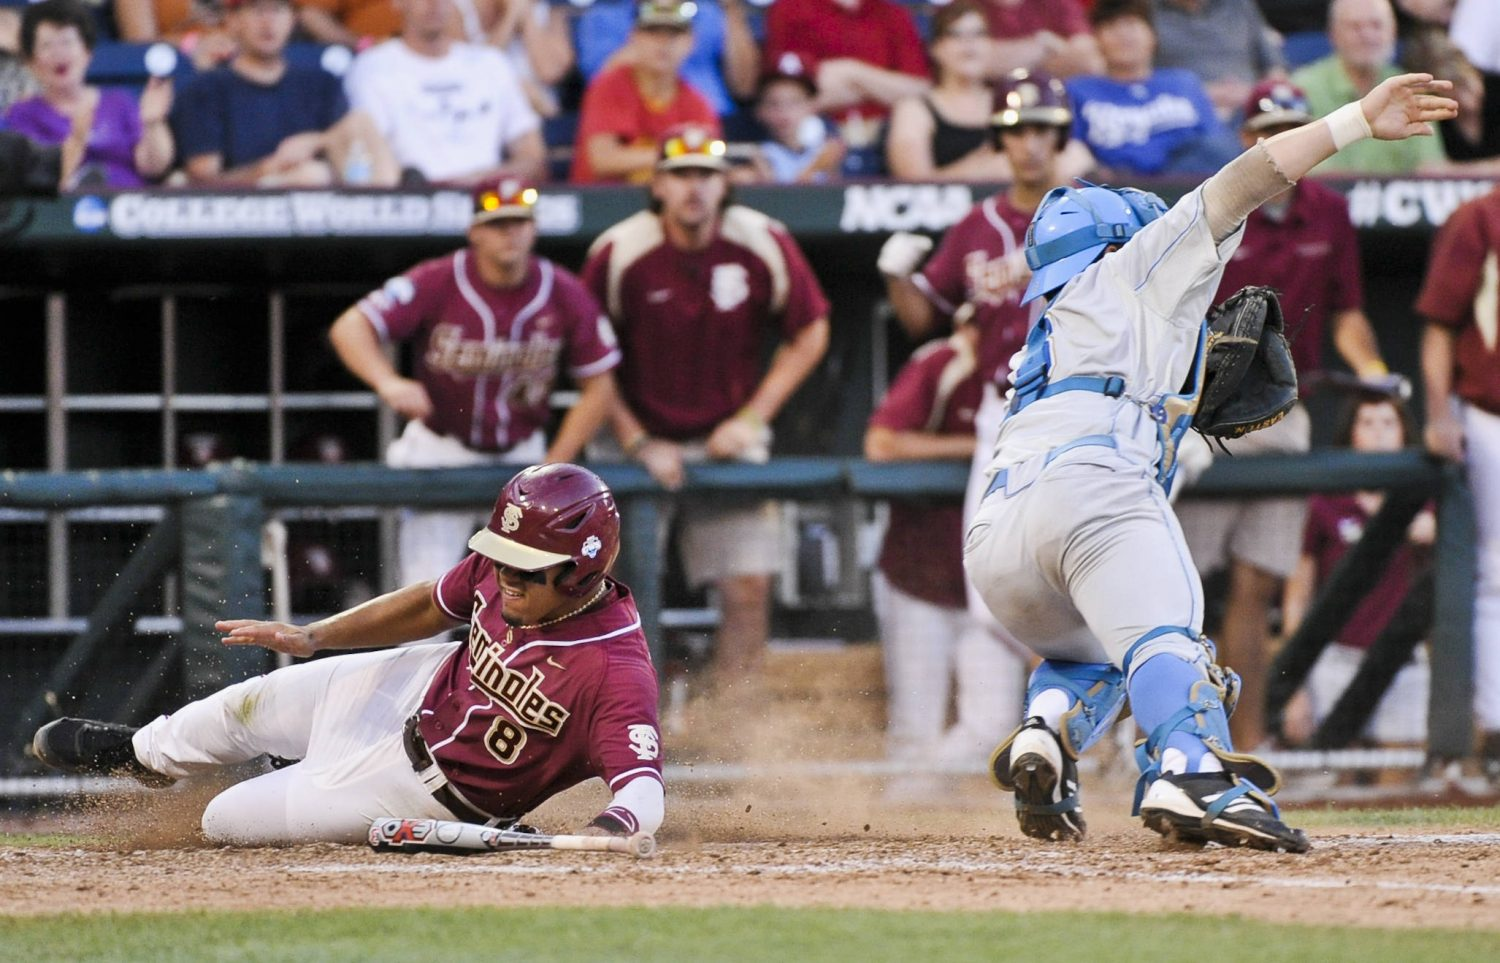 Florida State's Devon Travis, left, scores at home plate against UCLA catcher Tyler Heineman on a throwing error of third baseman Kevin Kramer, in the fourth inning. Florida State's Steven Rodriguez also scored on the play. (AP Photo/Ted Kirk)